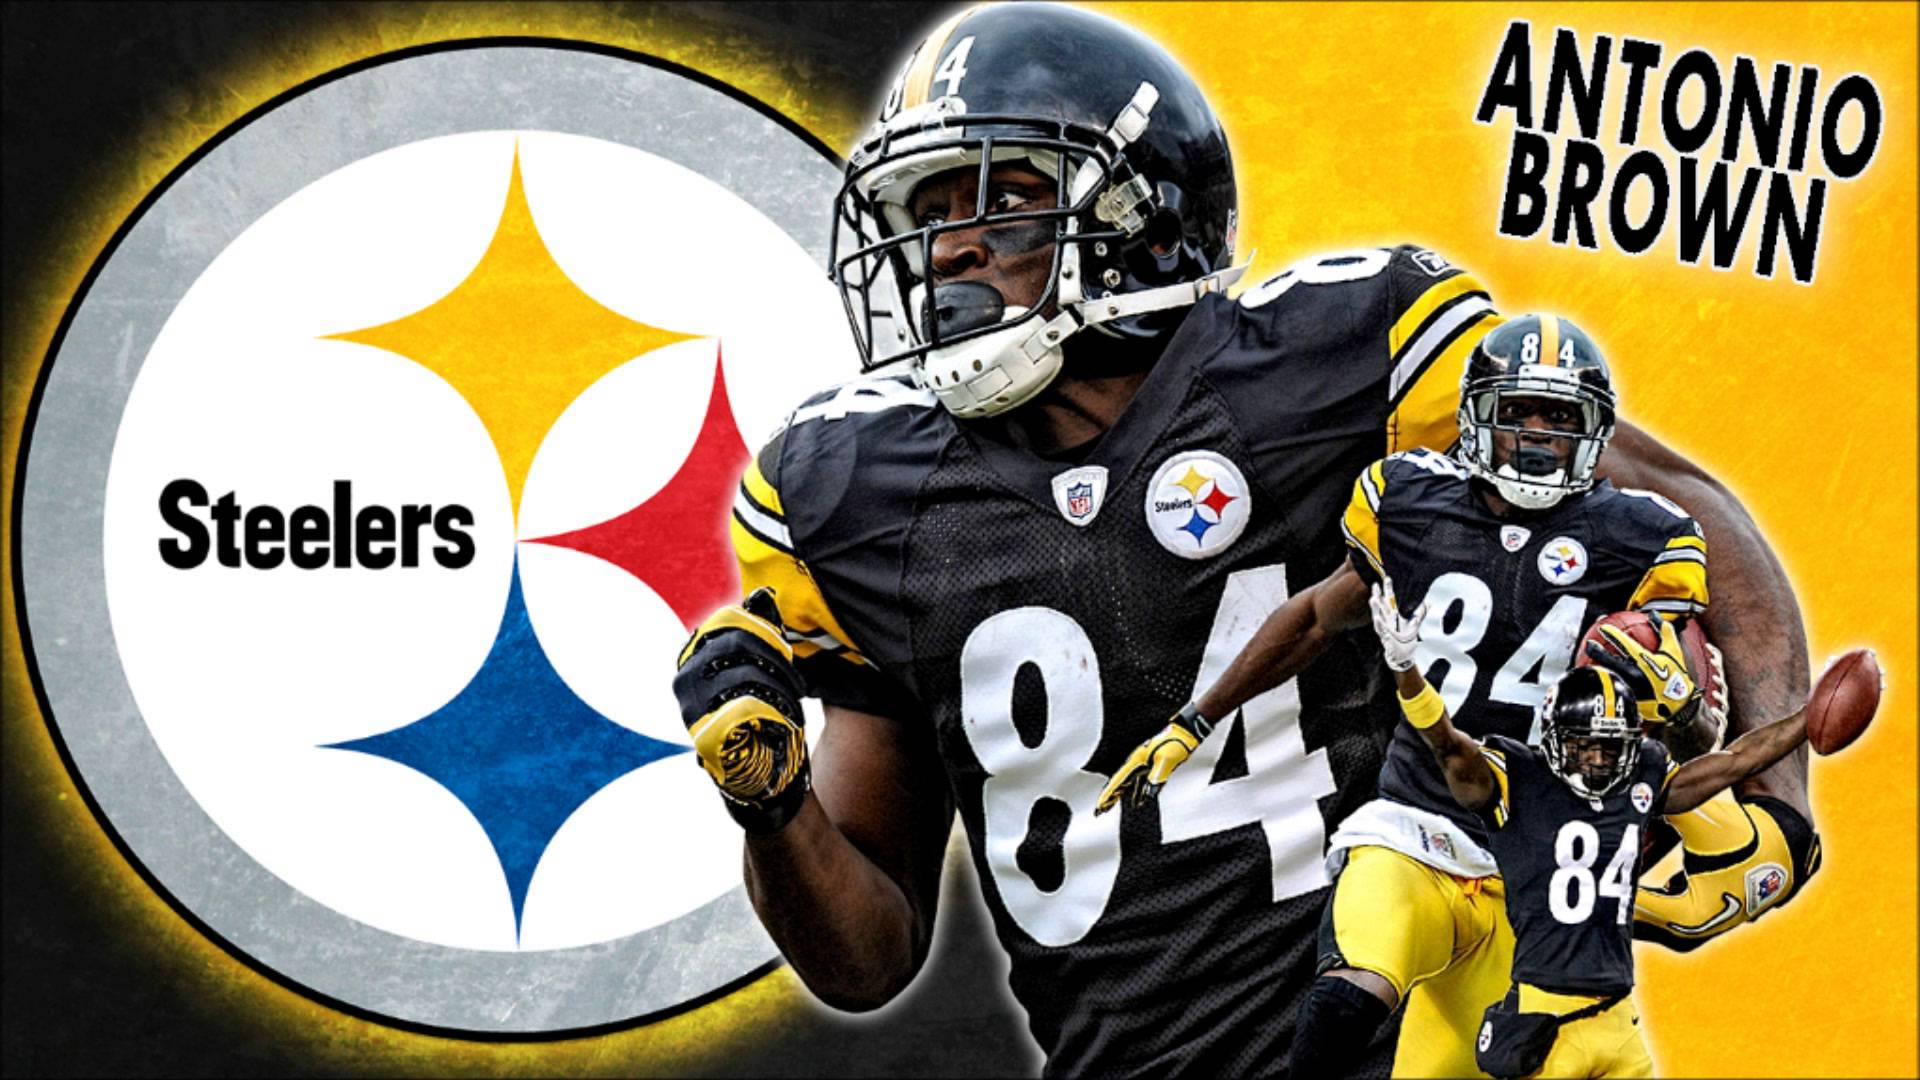 FREE NFL Antonio Brown Wallpaper 1920x1080